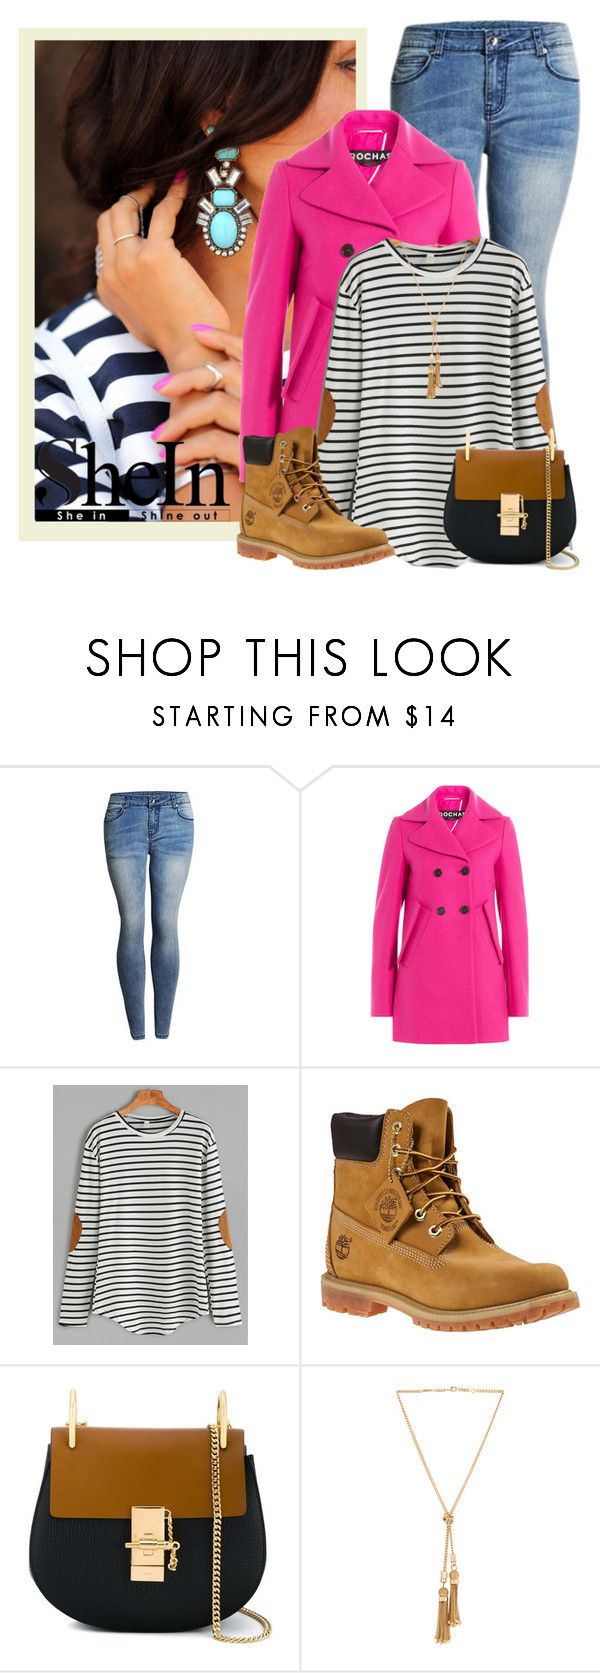 """Sin título #2098"" by miushka ❤ liked on Polyvore featuring Rochas, Timberland and Chloé"